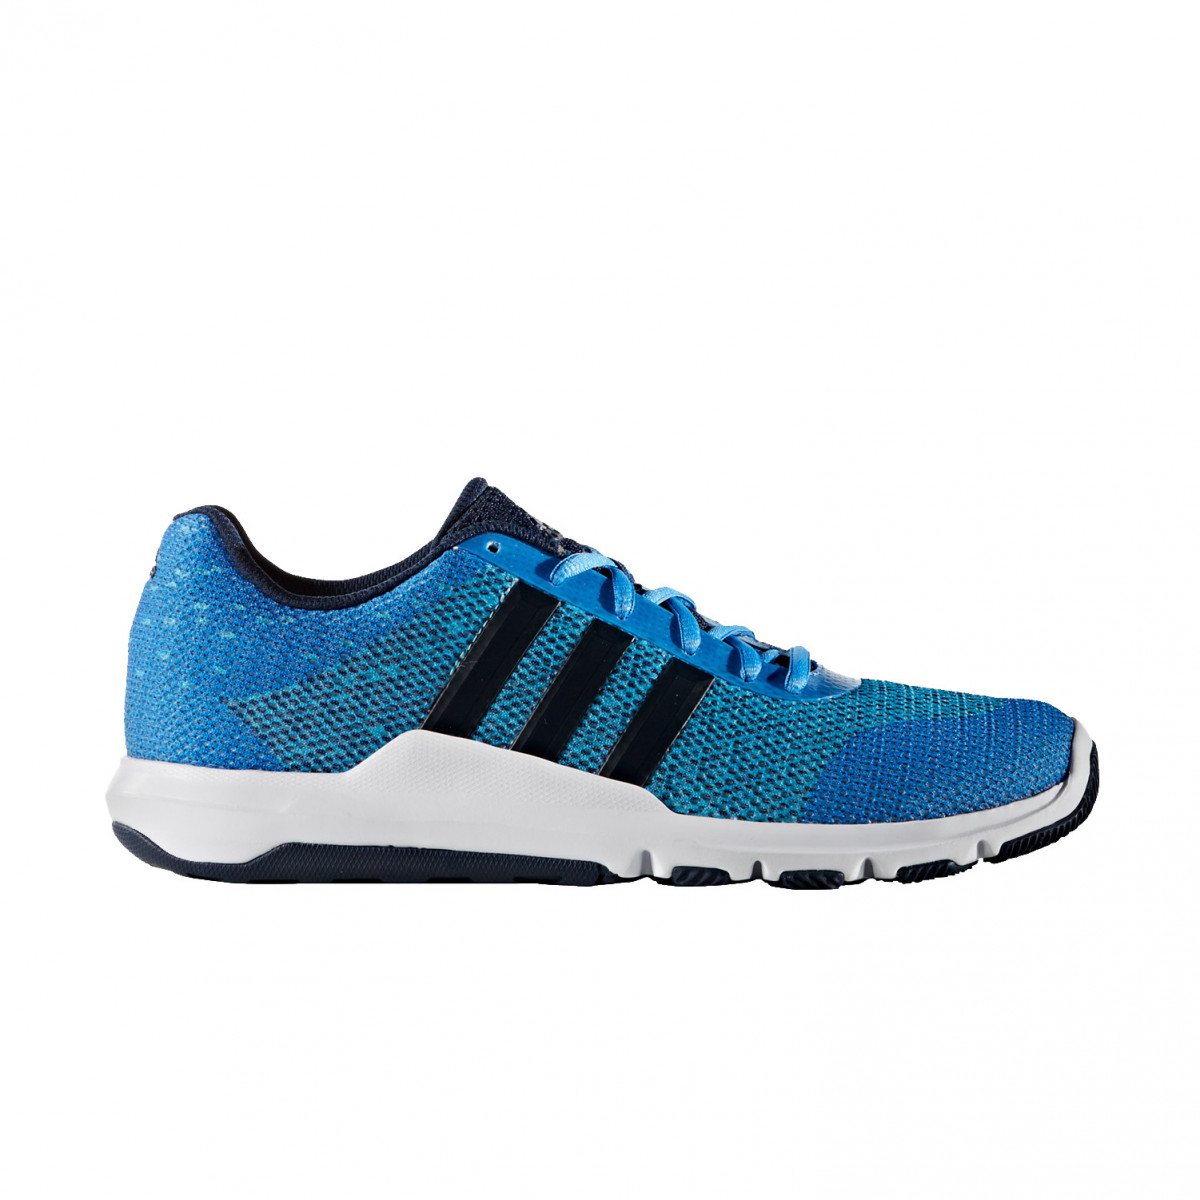 timeless design 0cd71 7a10f Zapatillas Adidas Adipure Primo